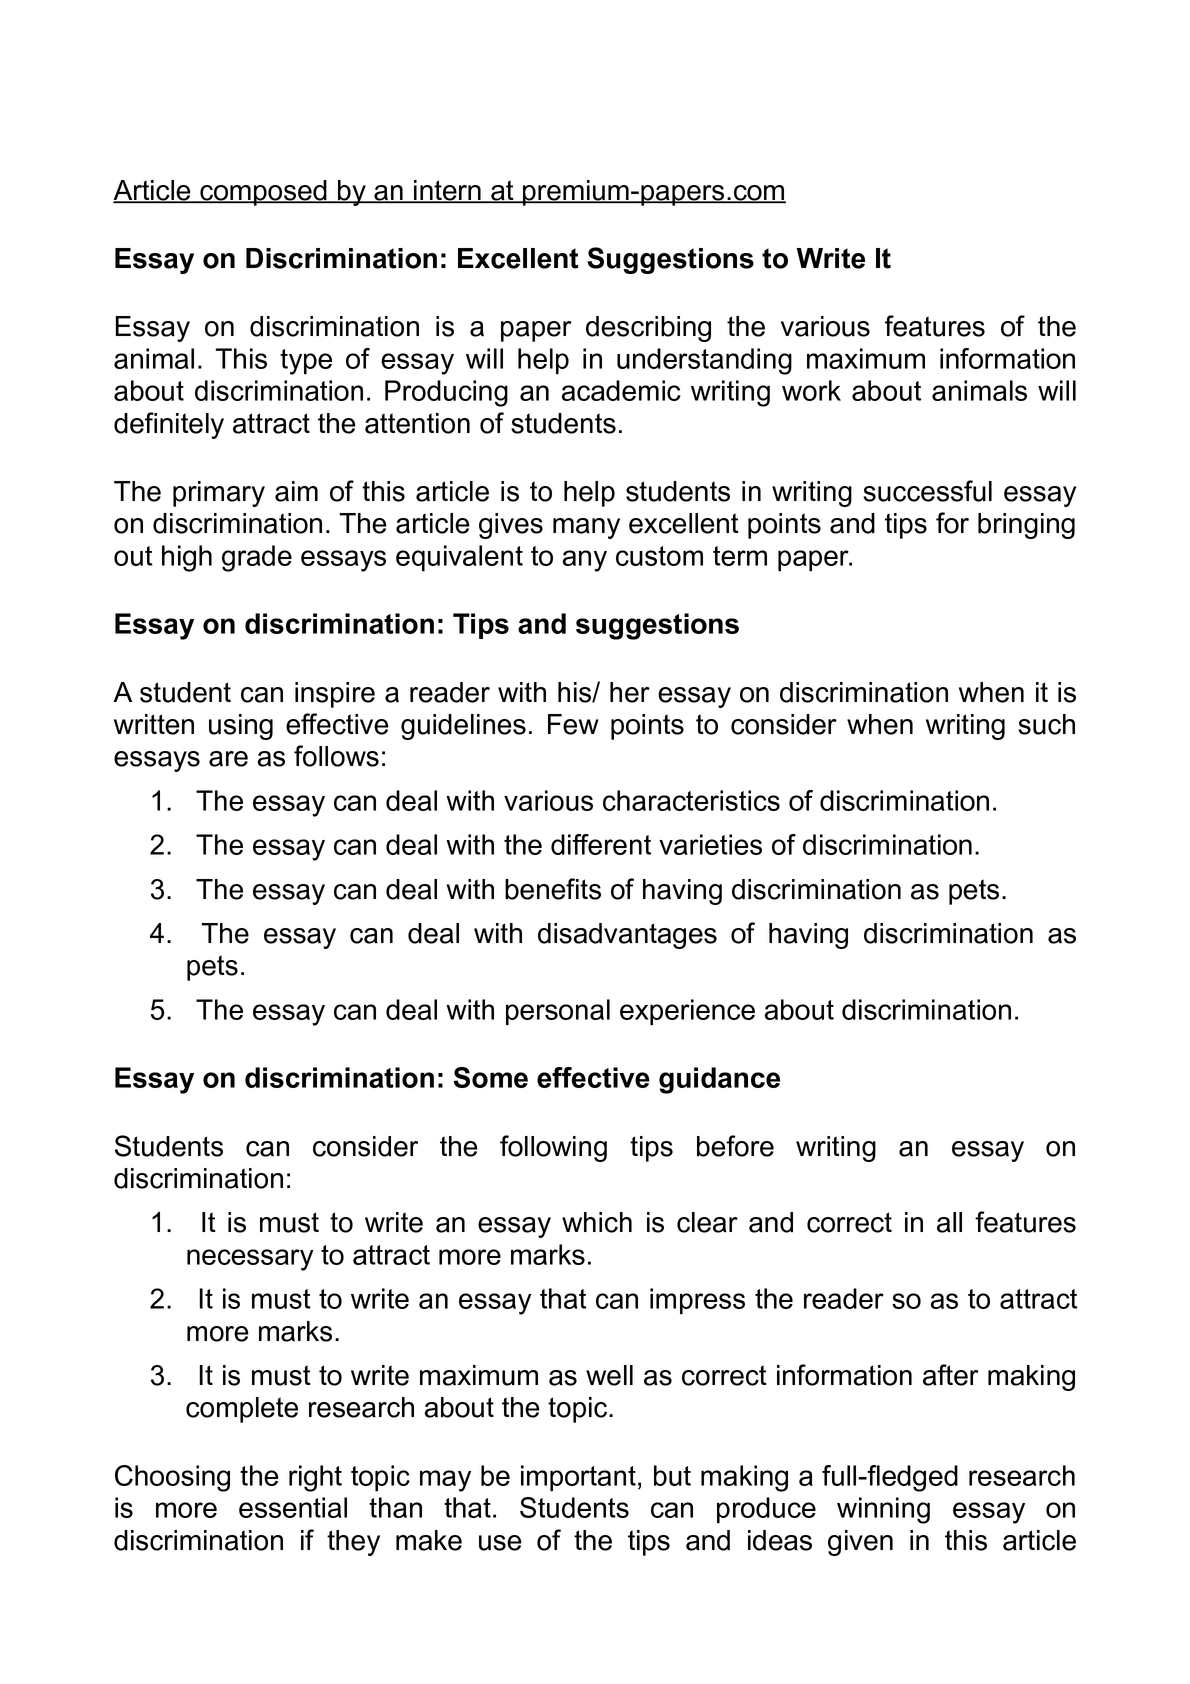 essay on discrimination excellent suggestions to write it